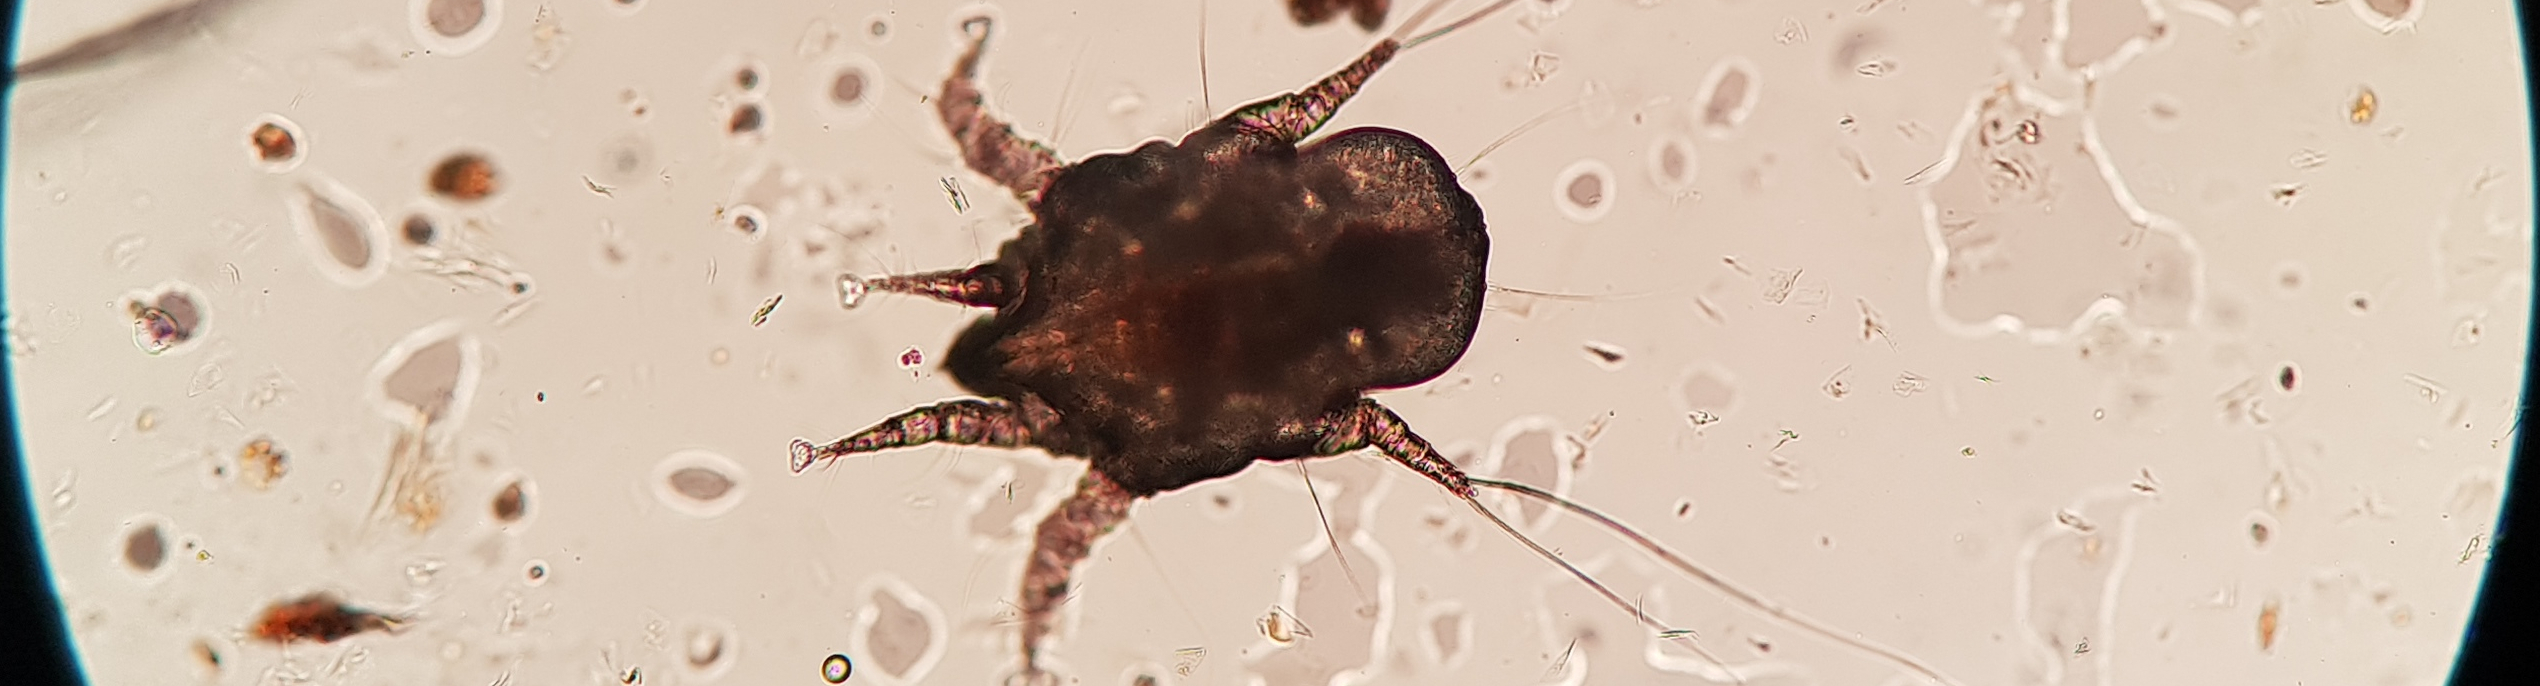 Microscopic image of ear mite